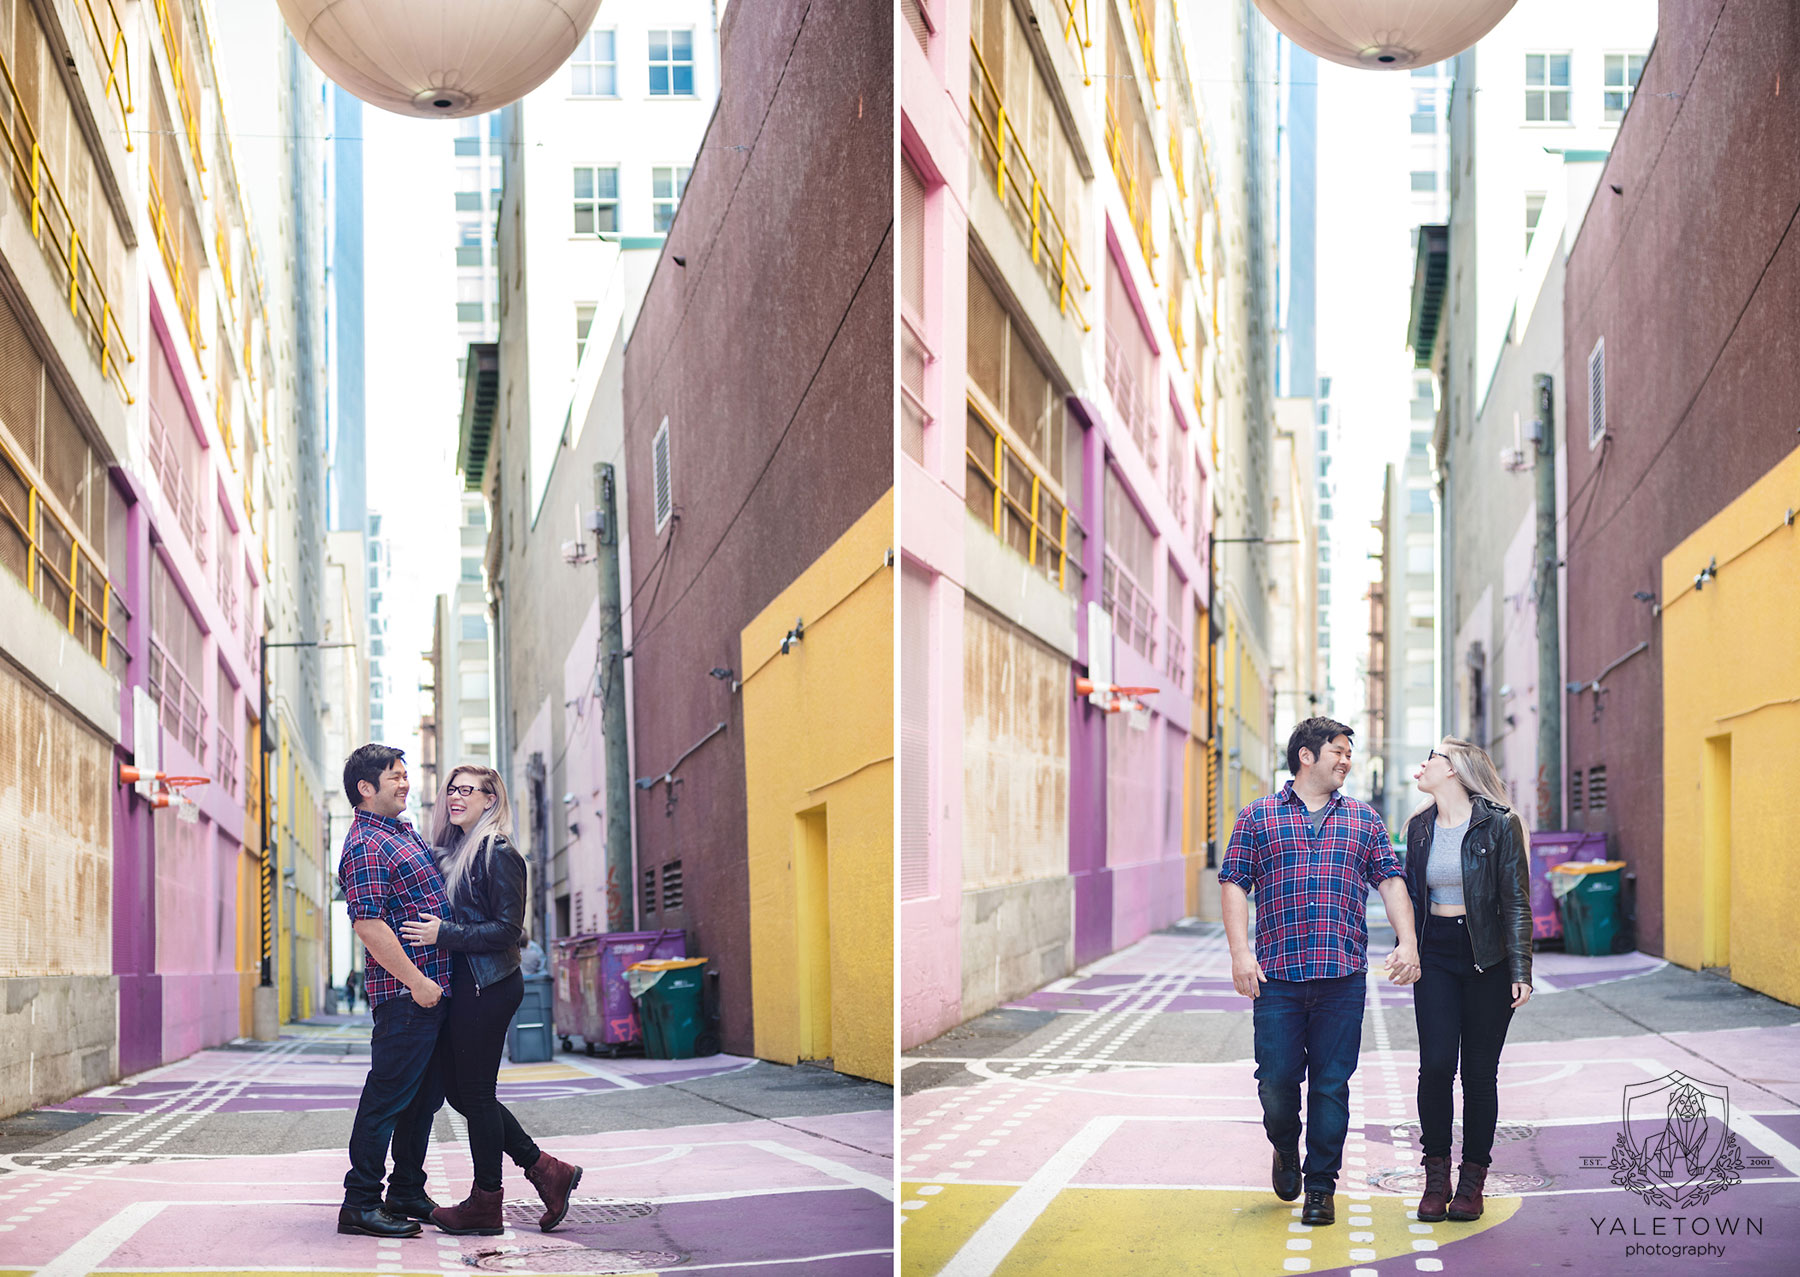 3-Yaletown-Photography-vancouver-urban-mural-engagement-photo.jpg